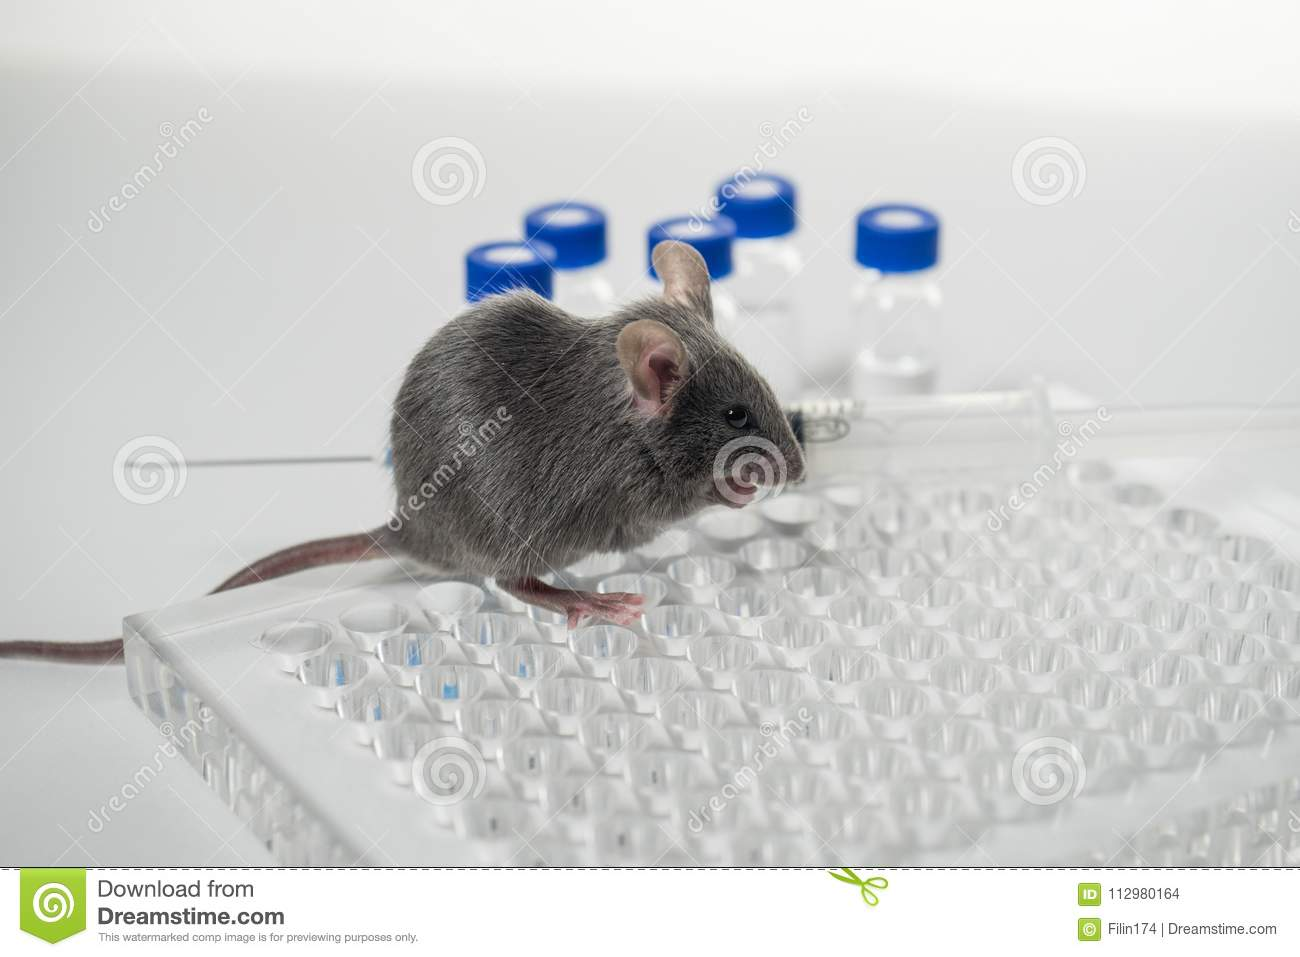 A gray laboratory mouse with an immunological plate, a syringe and vials. Concept - testing of drugs, vaccines